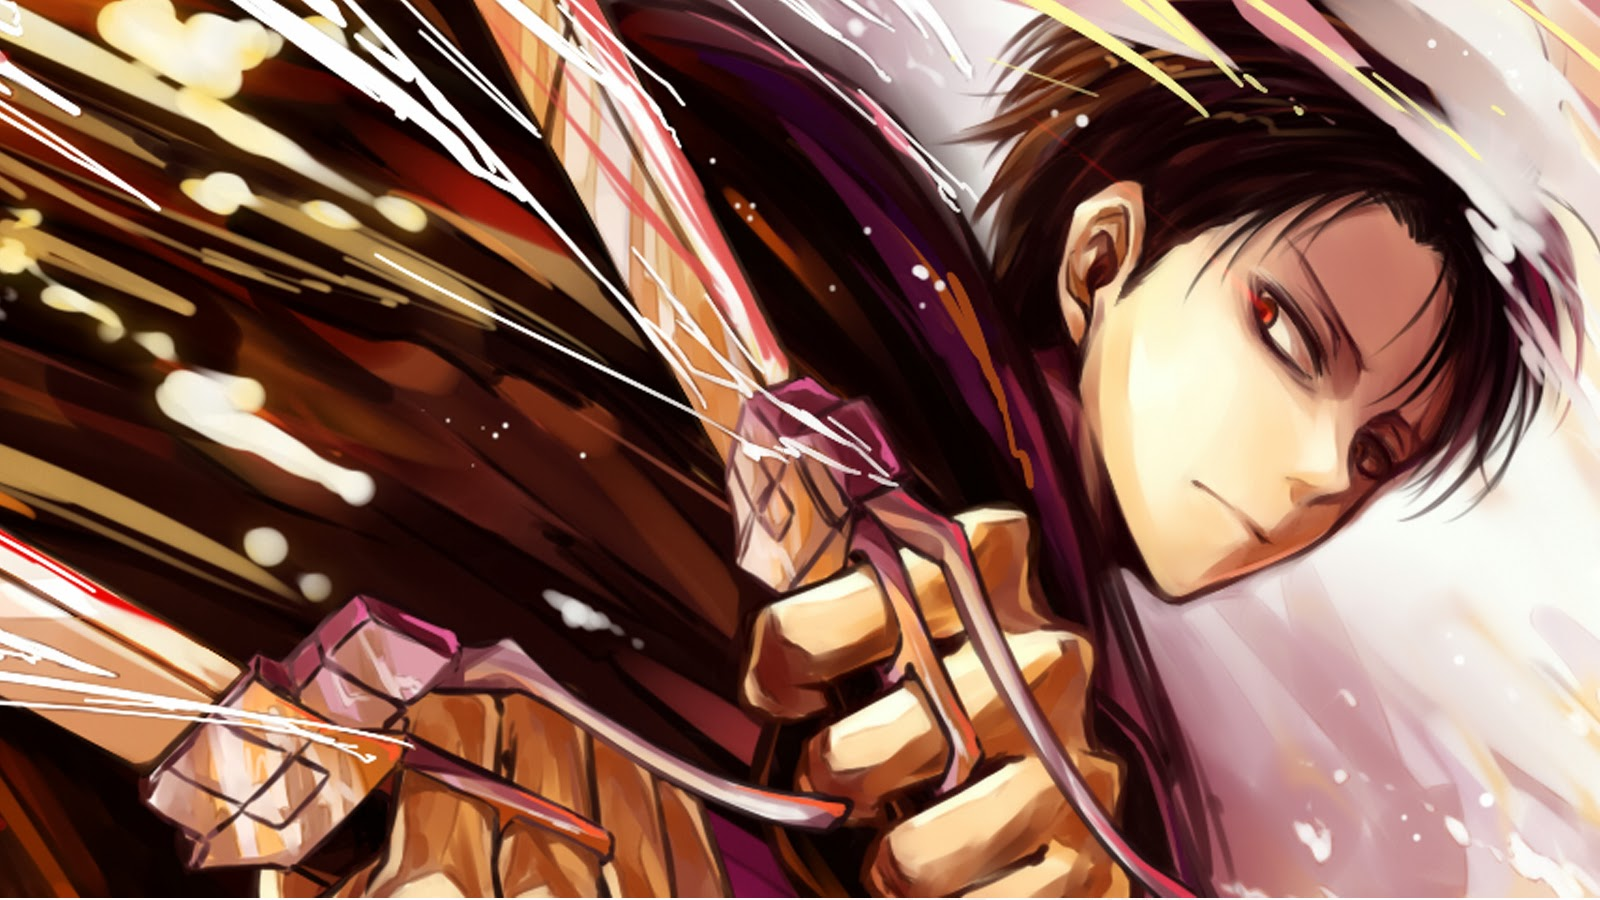 levi anime attack on titan shingeki no kyojin 1600x900 9l 1600x900